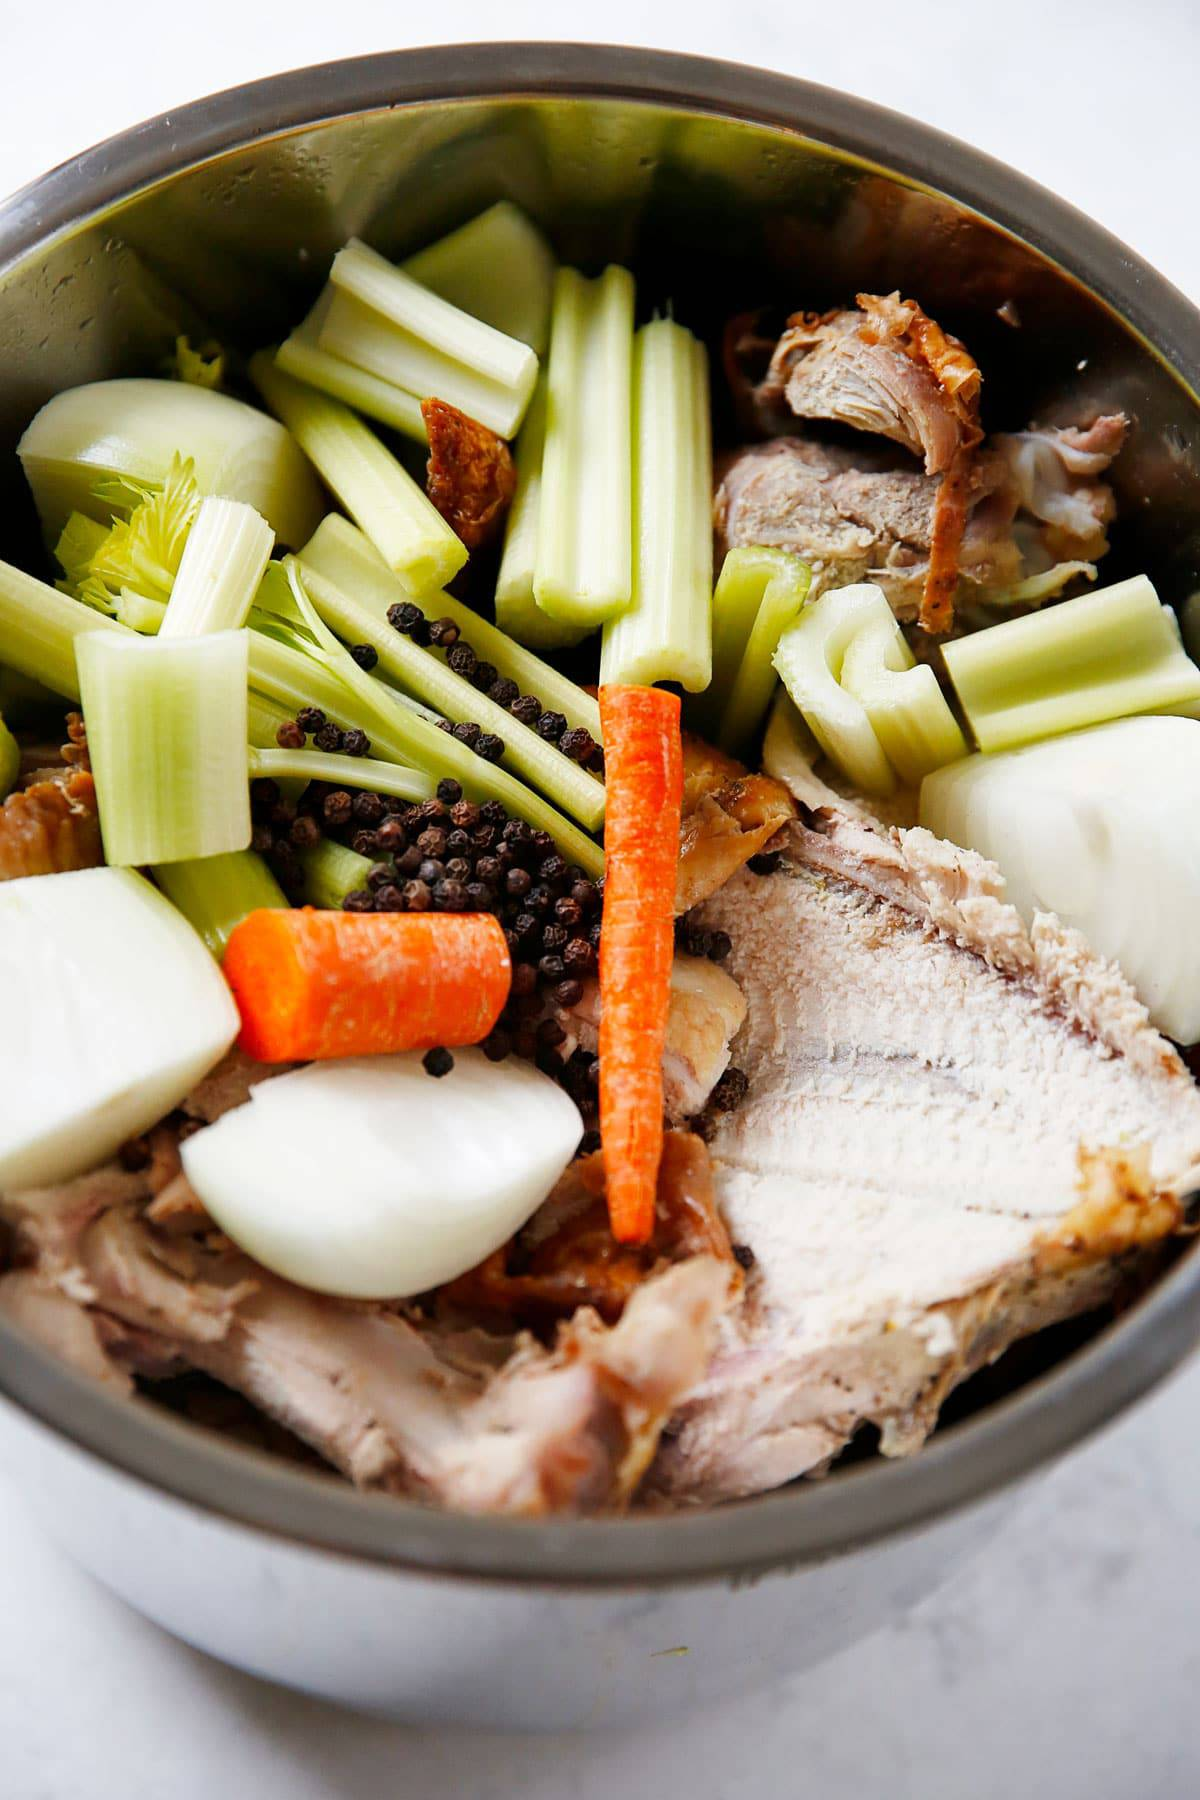 Turkey carcass and veggies in the instant pot to make stock